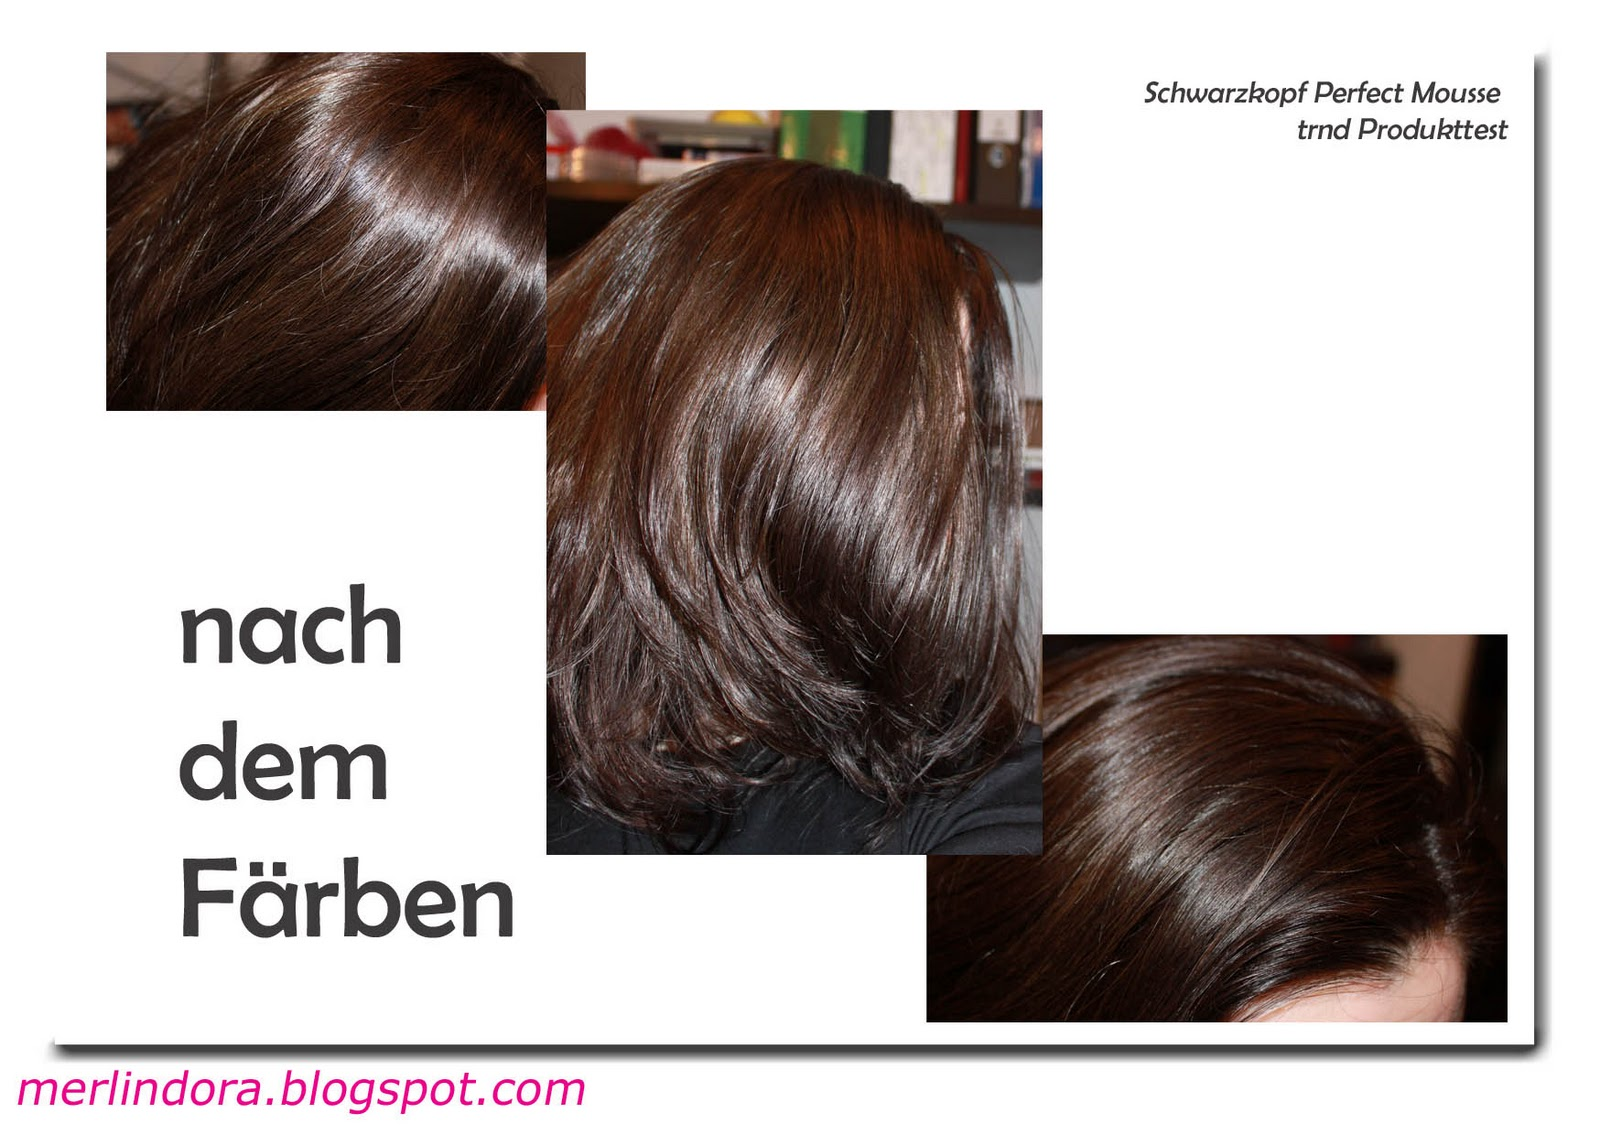 merlindoras blog trnd projekt schwarzkopf perfect mousse